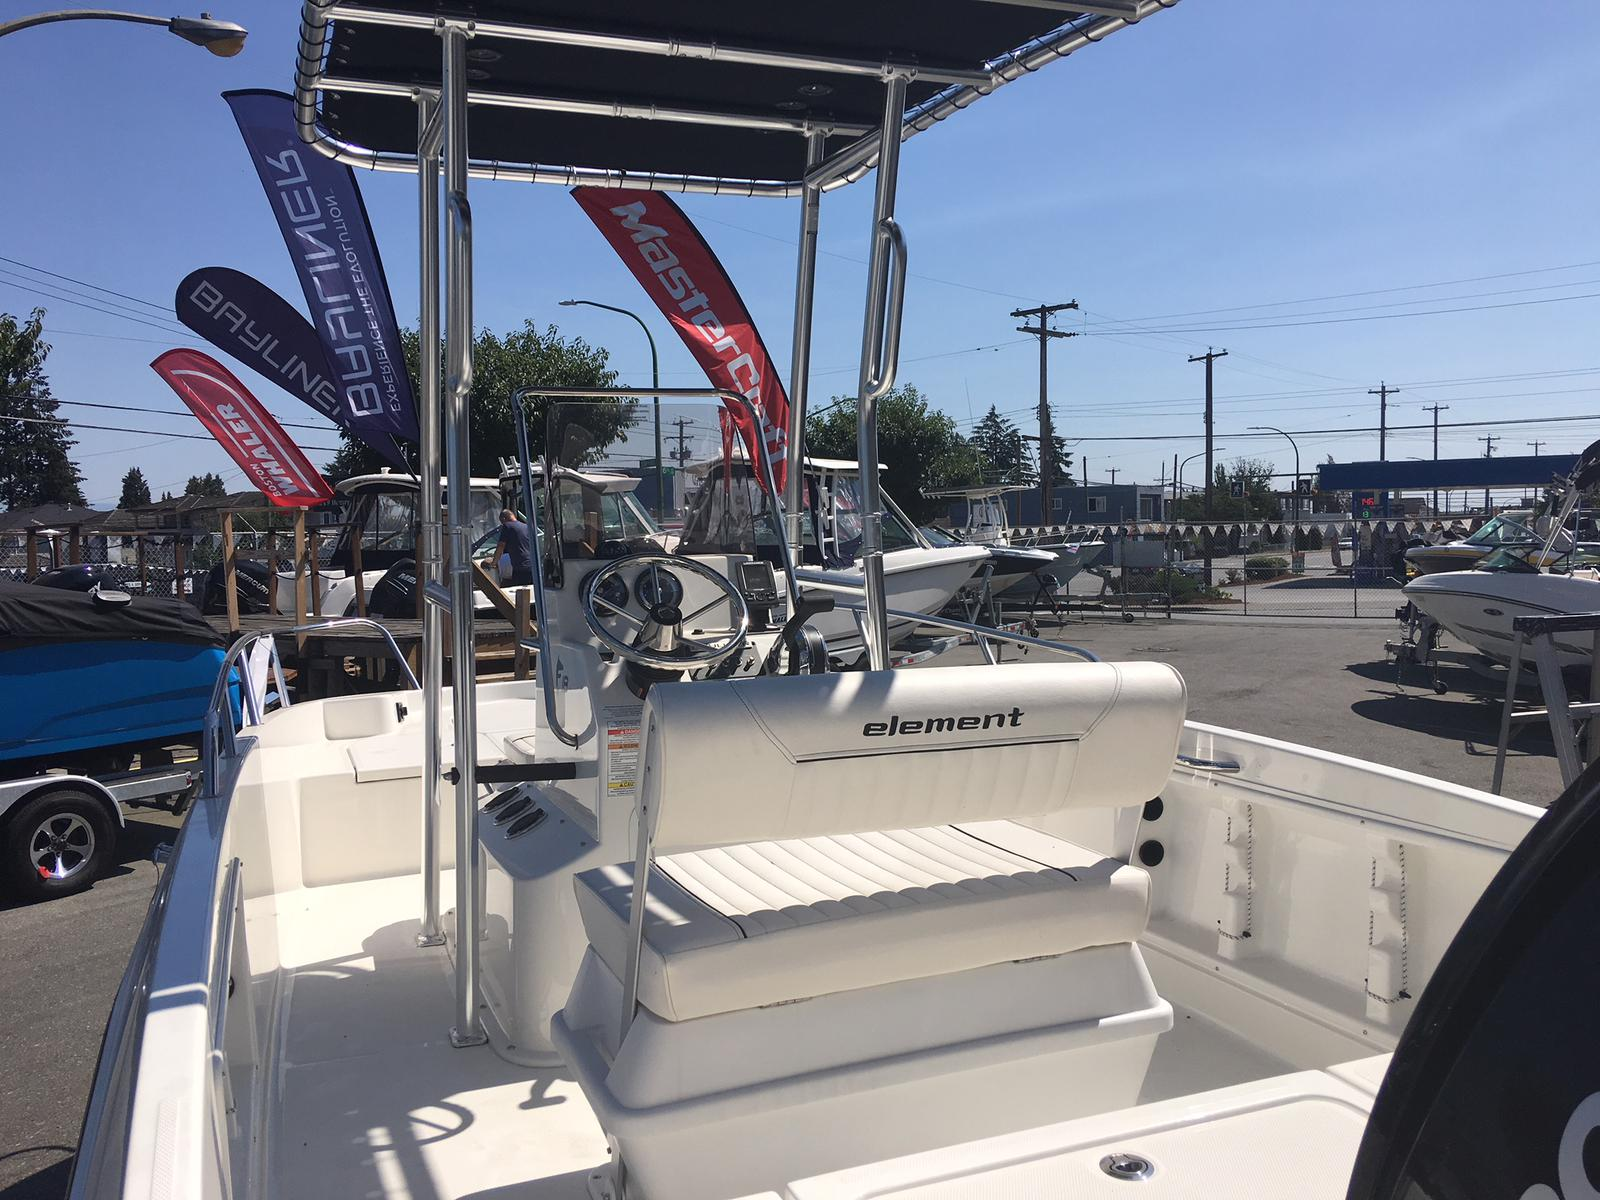 2018 Bayliner boat for sale, model of the boat is Element F18 & Image # 3 of 6